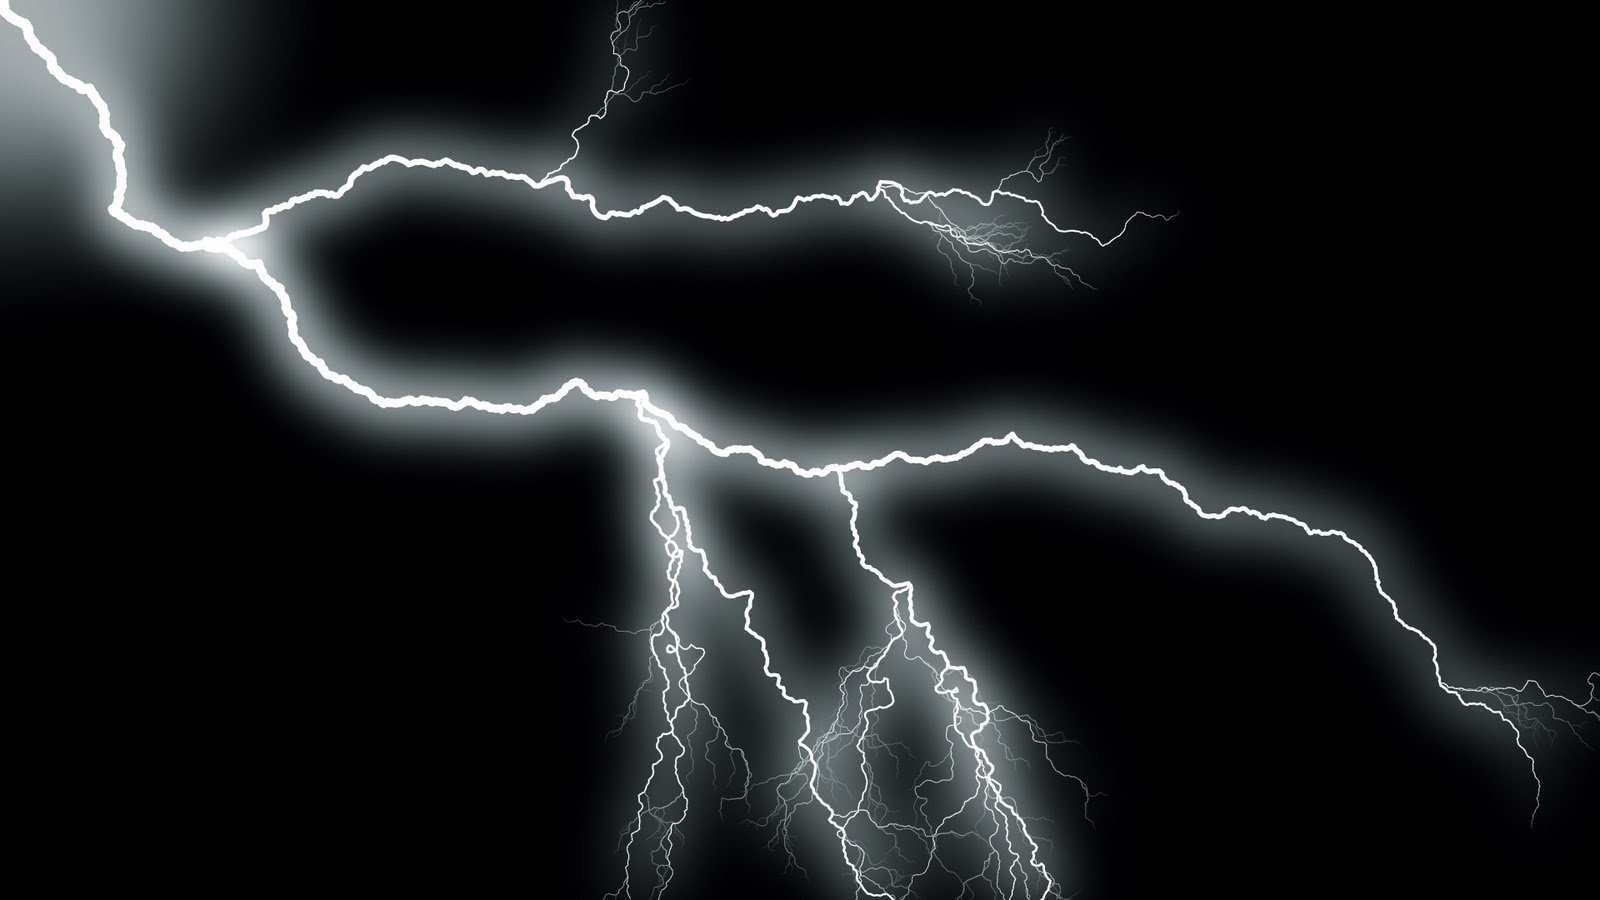 Lightning wallpaper and background image 1600x900 id148078 photography lightning wallpaper voltagebd Image collections